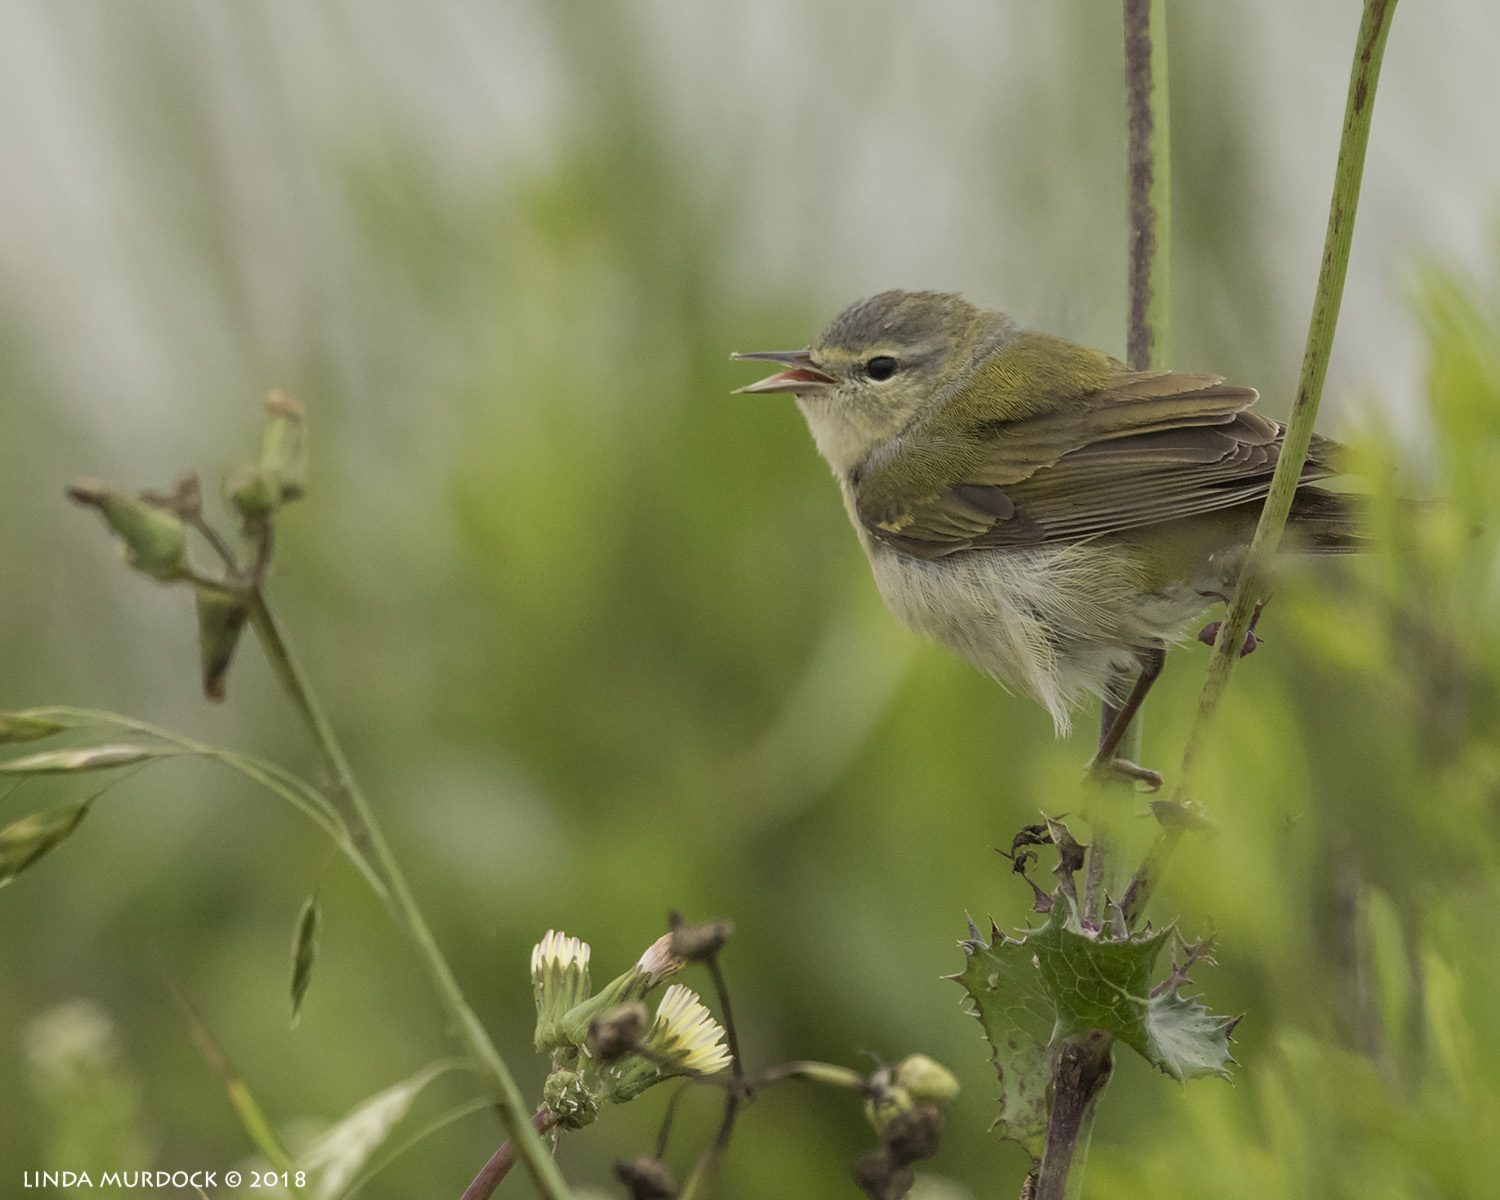 Another Tennessee Warbler but out in the open  Nikon D810 with NIKKOR 500mm f/4E VR + Nikon 1.4x TC ~ 1/2000   sec f/6.3 ISO 1600; tripod